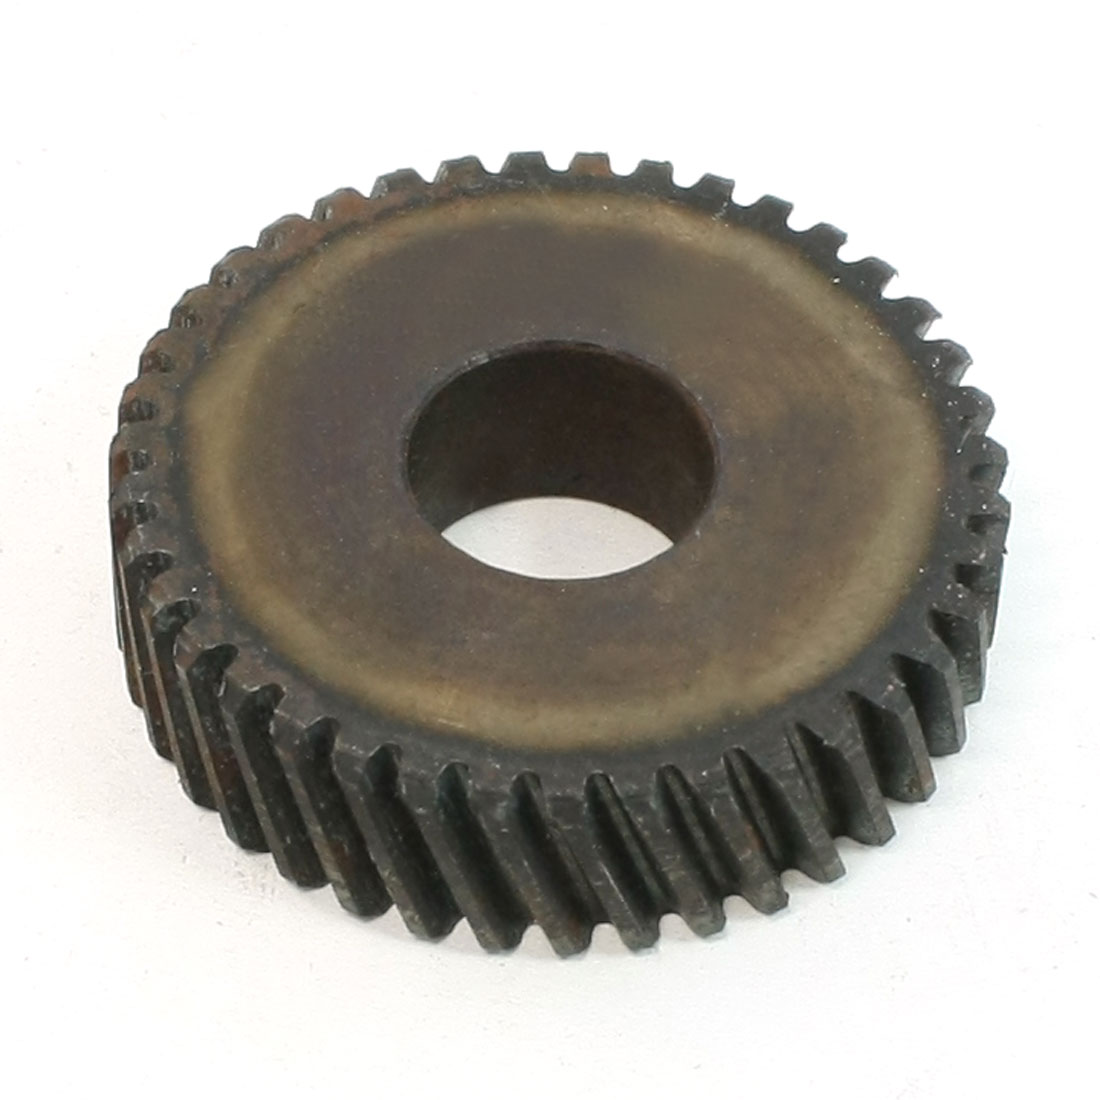 Spare Part 39 Teeth 53mm x 18mm Gear Wheel for Hitachi C9 Electric Saw